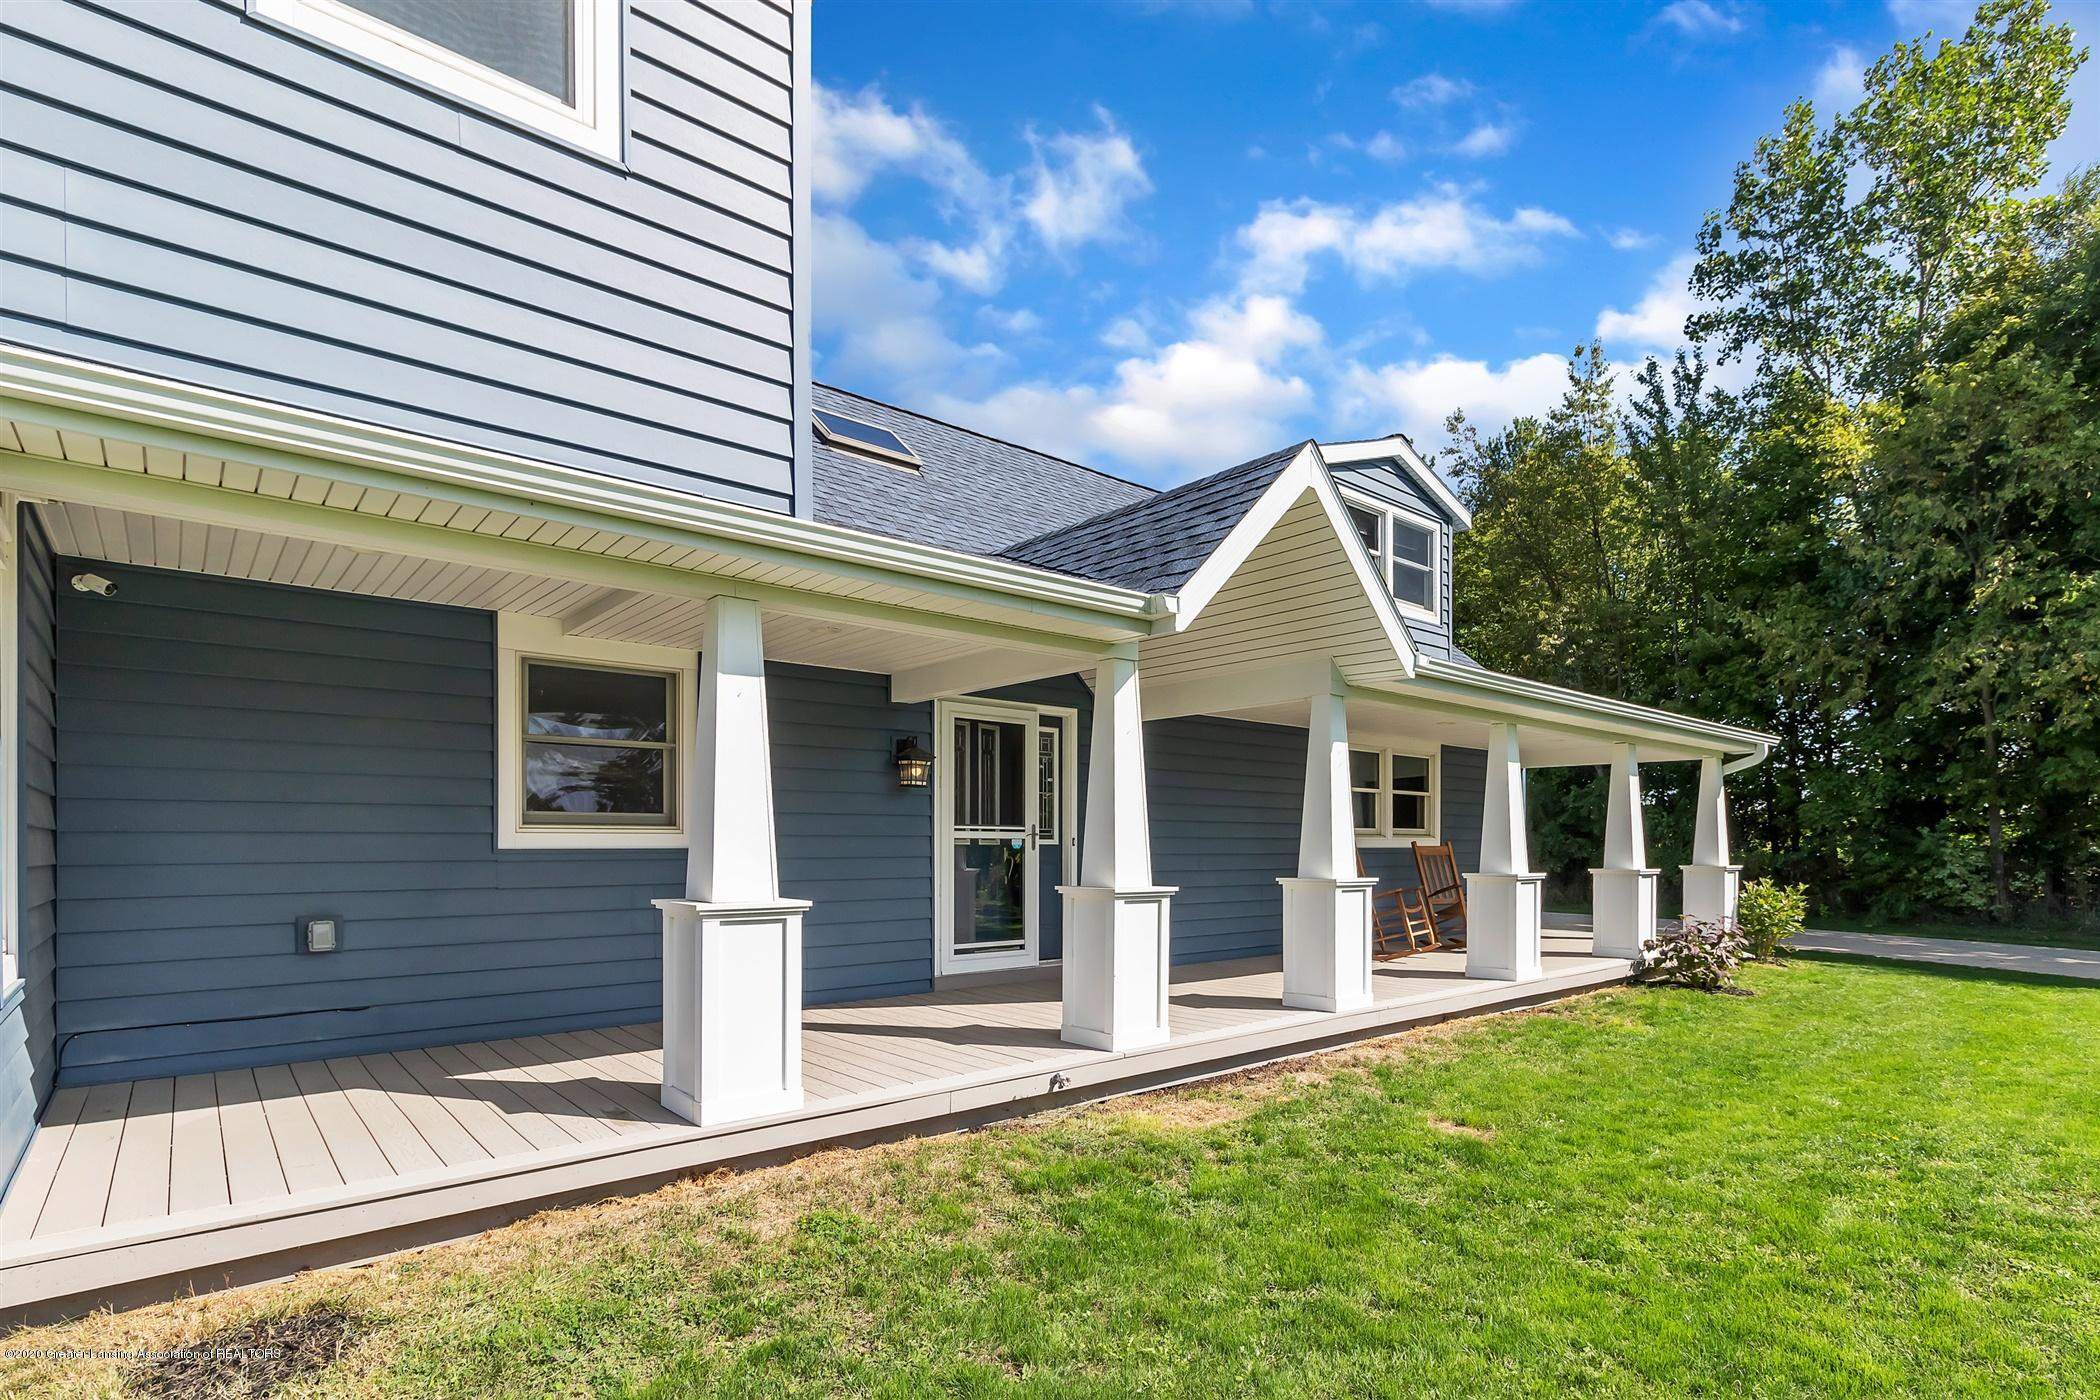 7346 W Cutler Rd - 46'X8' COVERED PORCH - 6